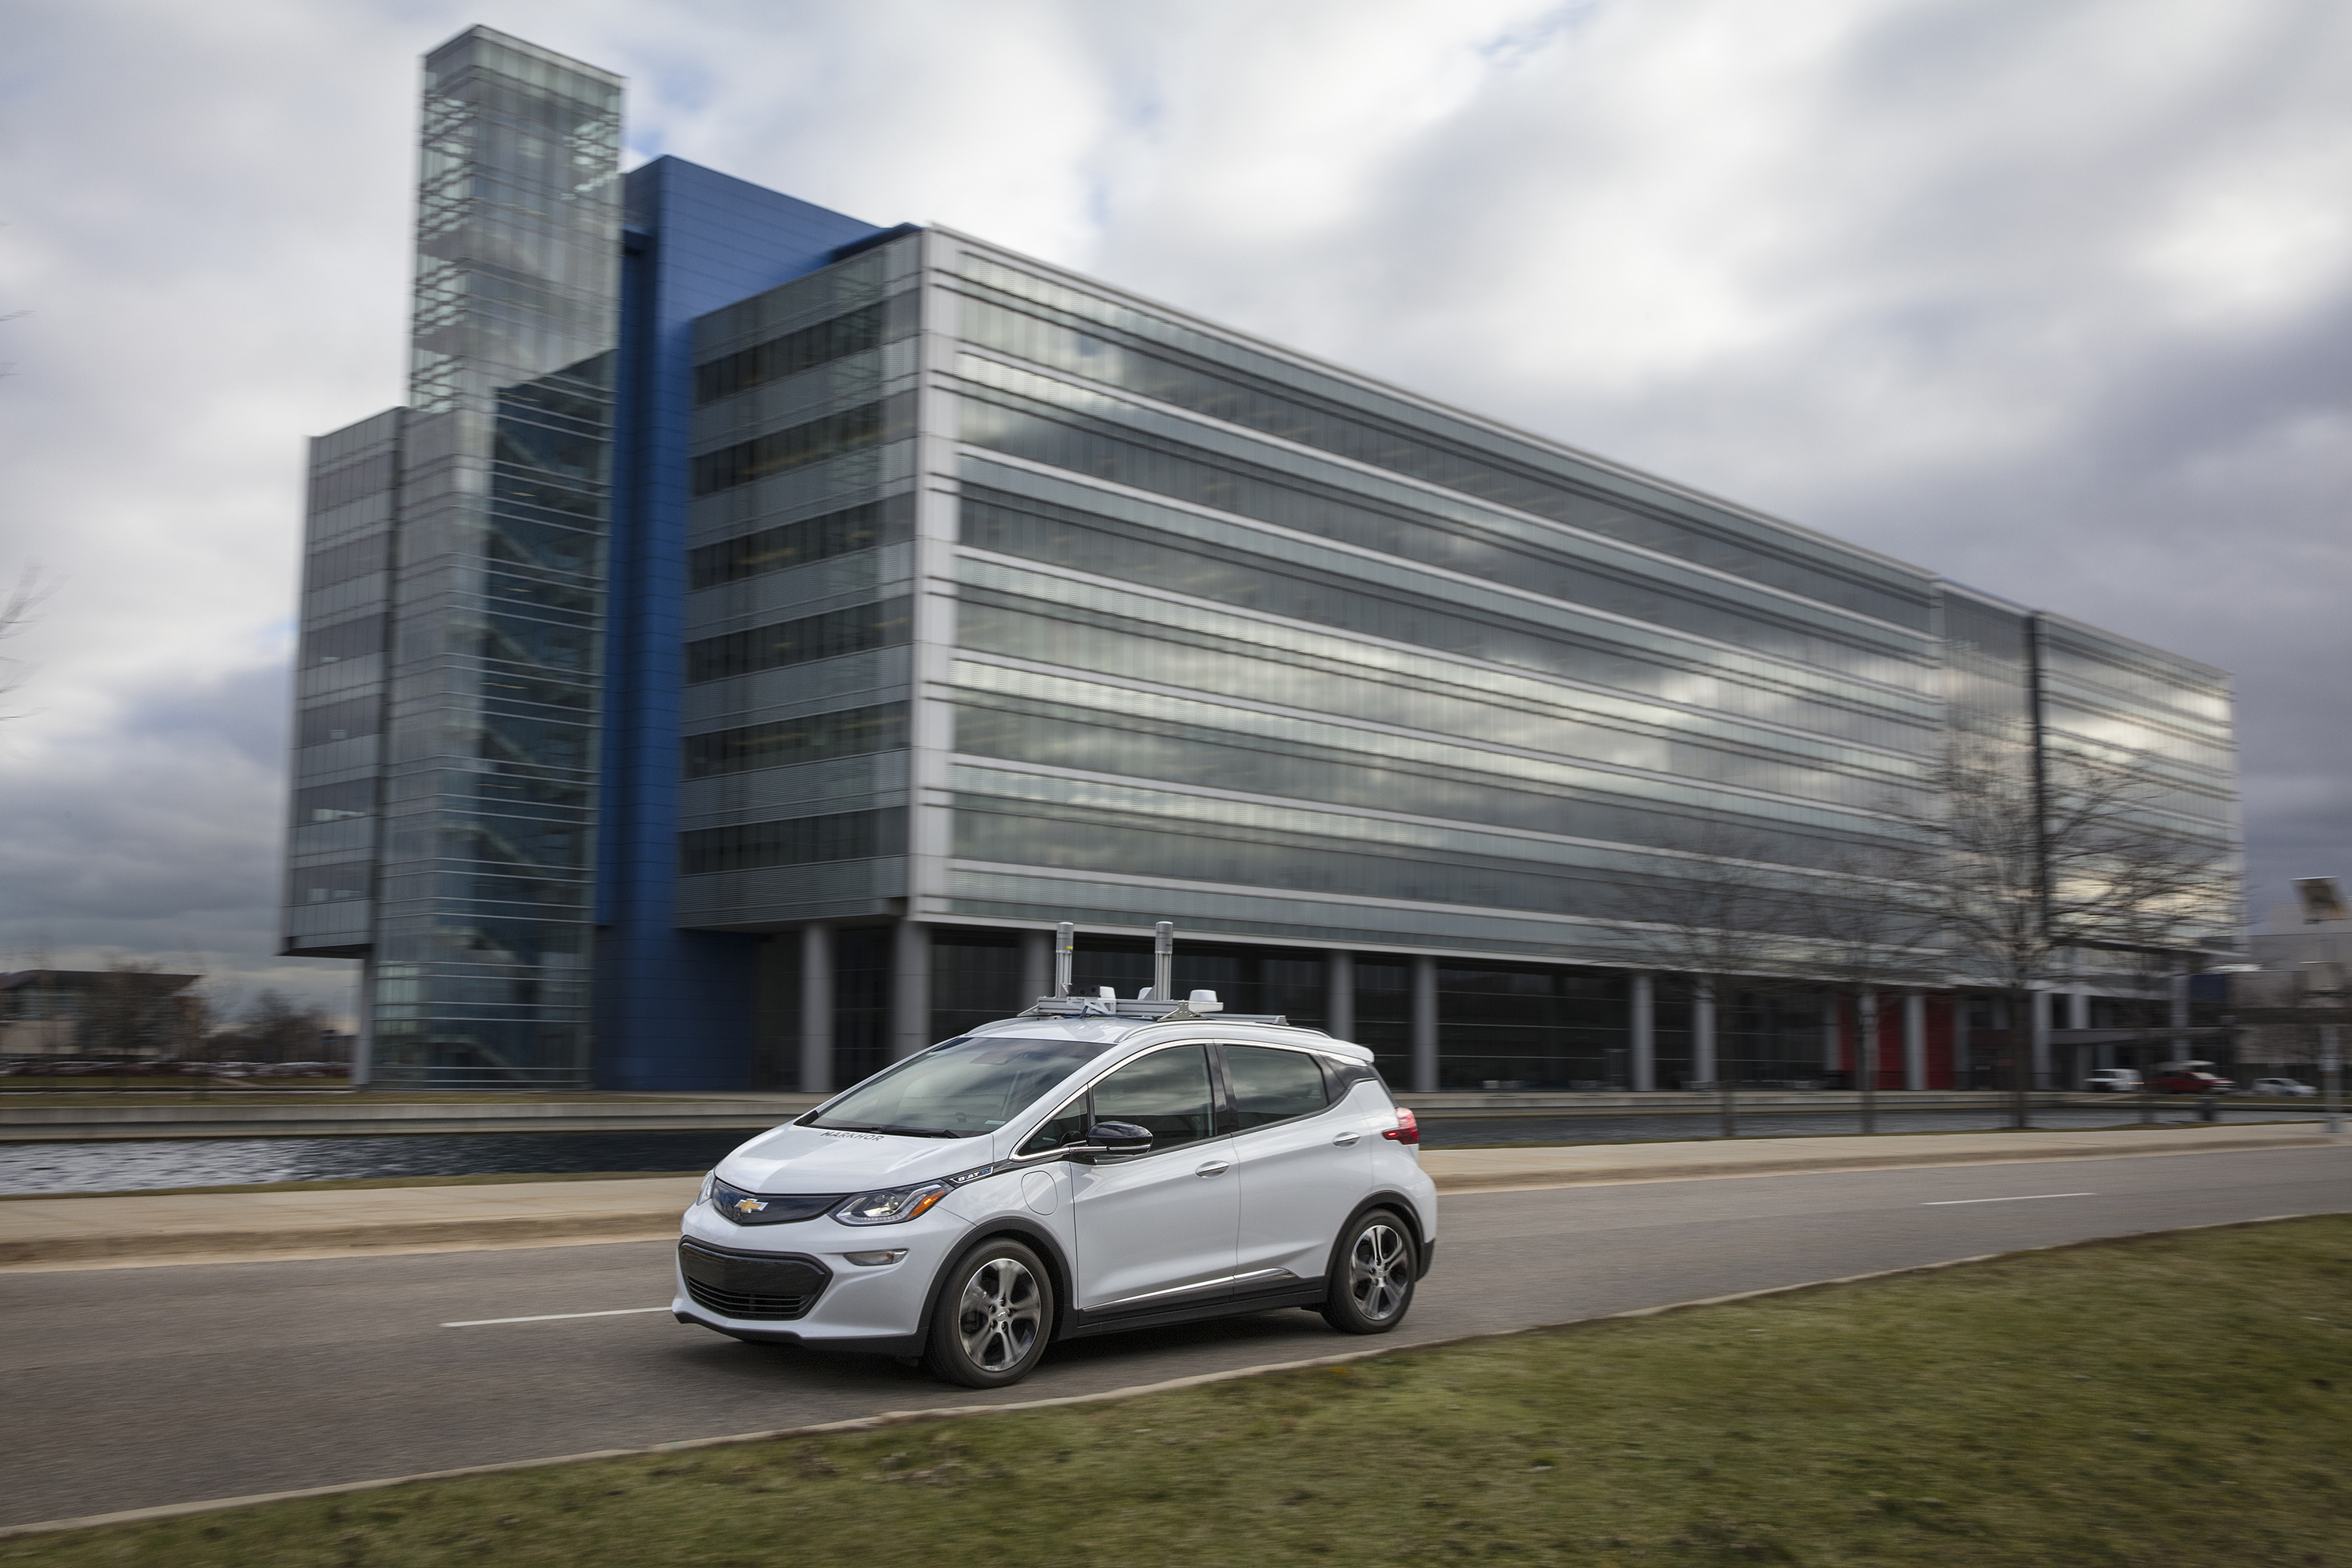 Gm To Start Autonomous Vehicle Manufacturing And Testing In Michigan